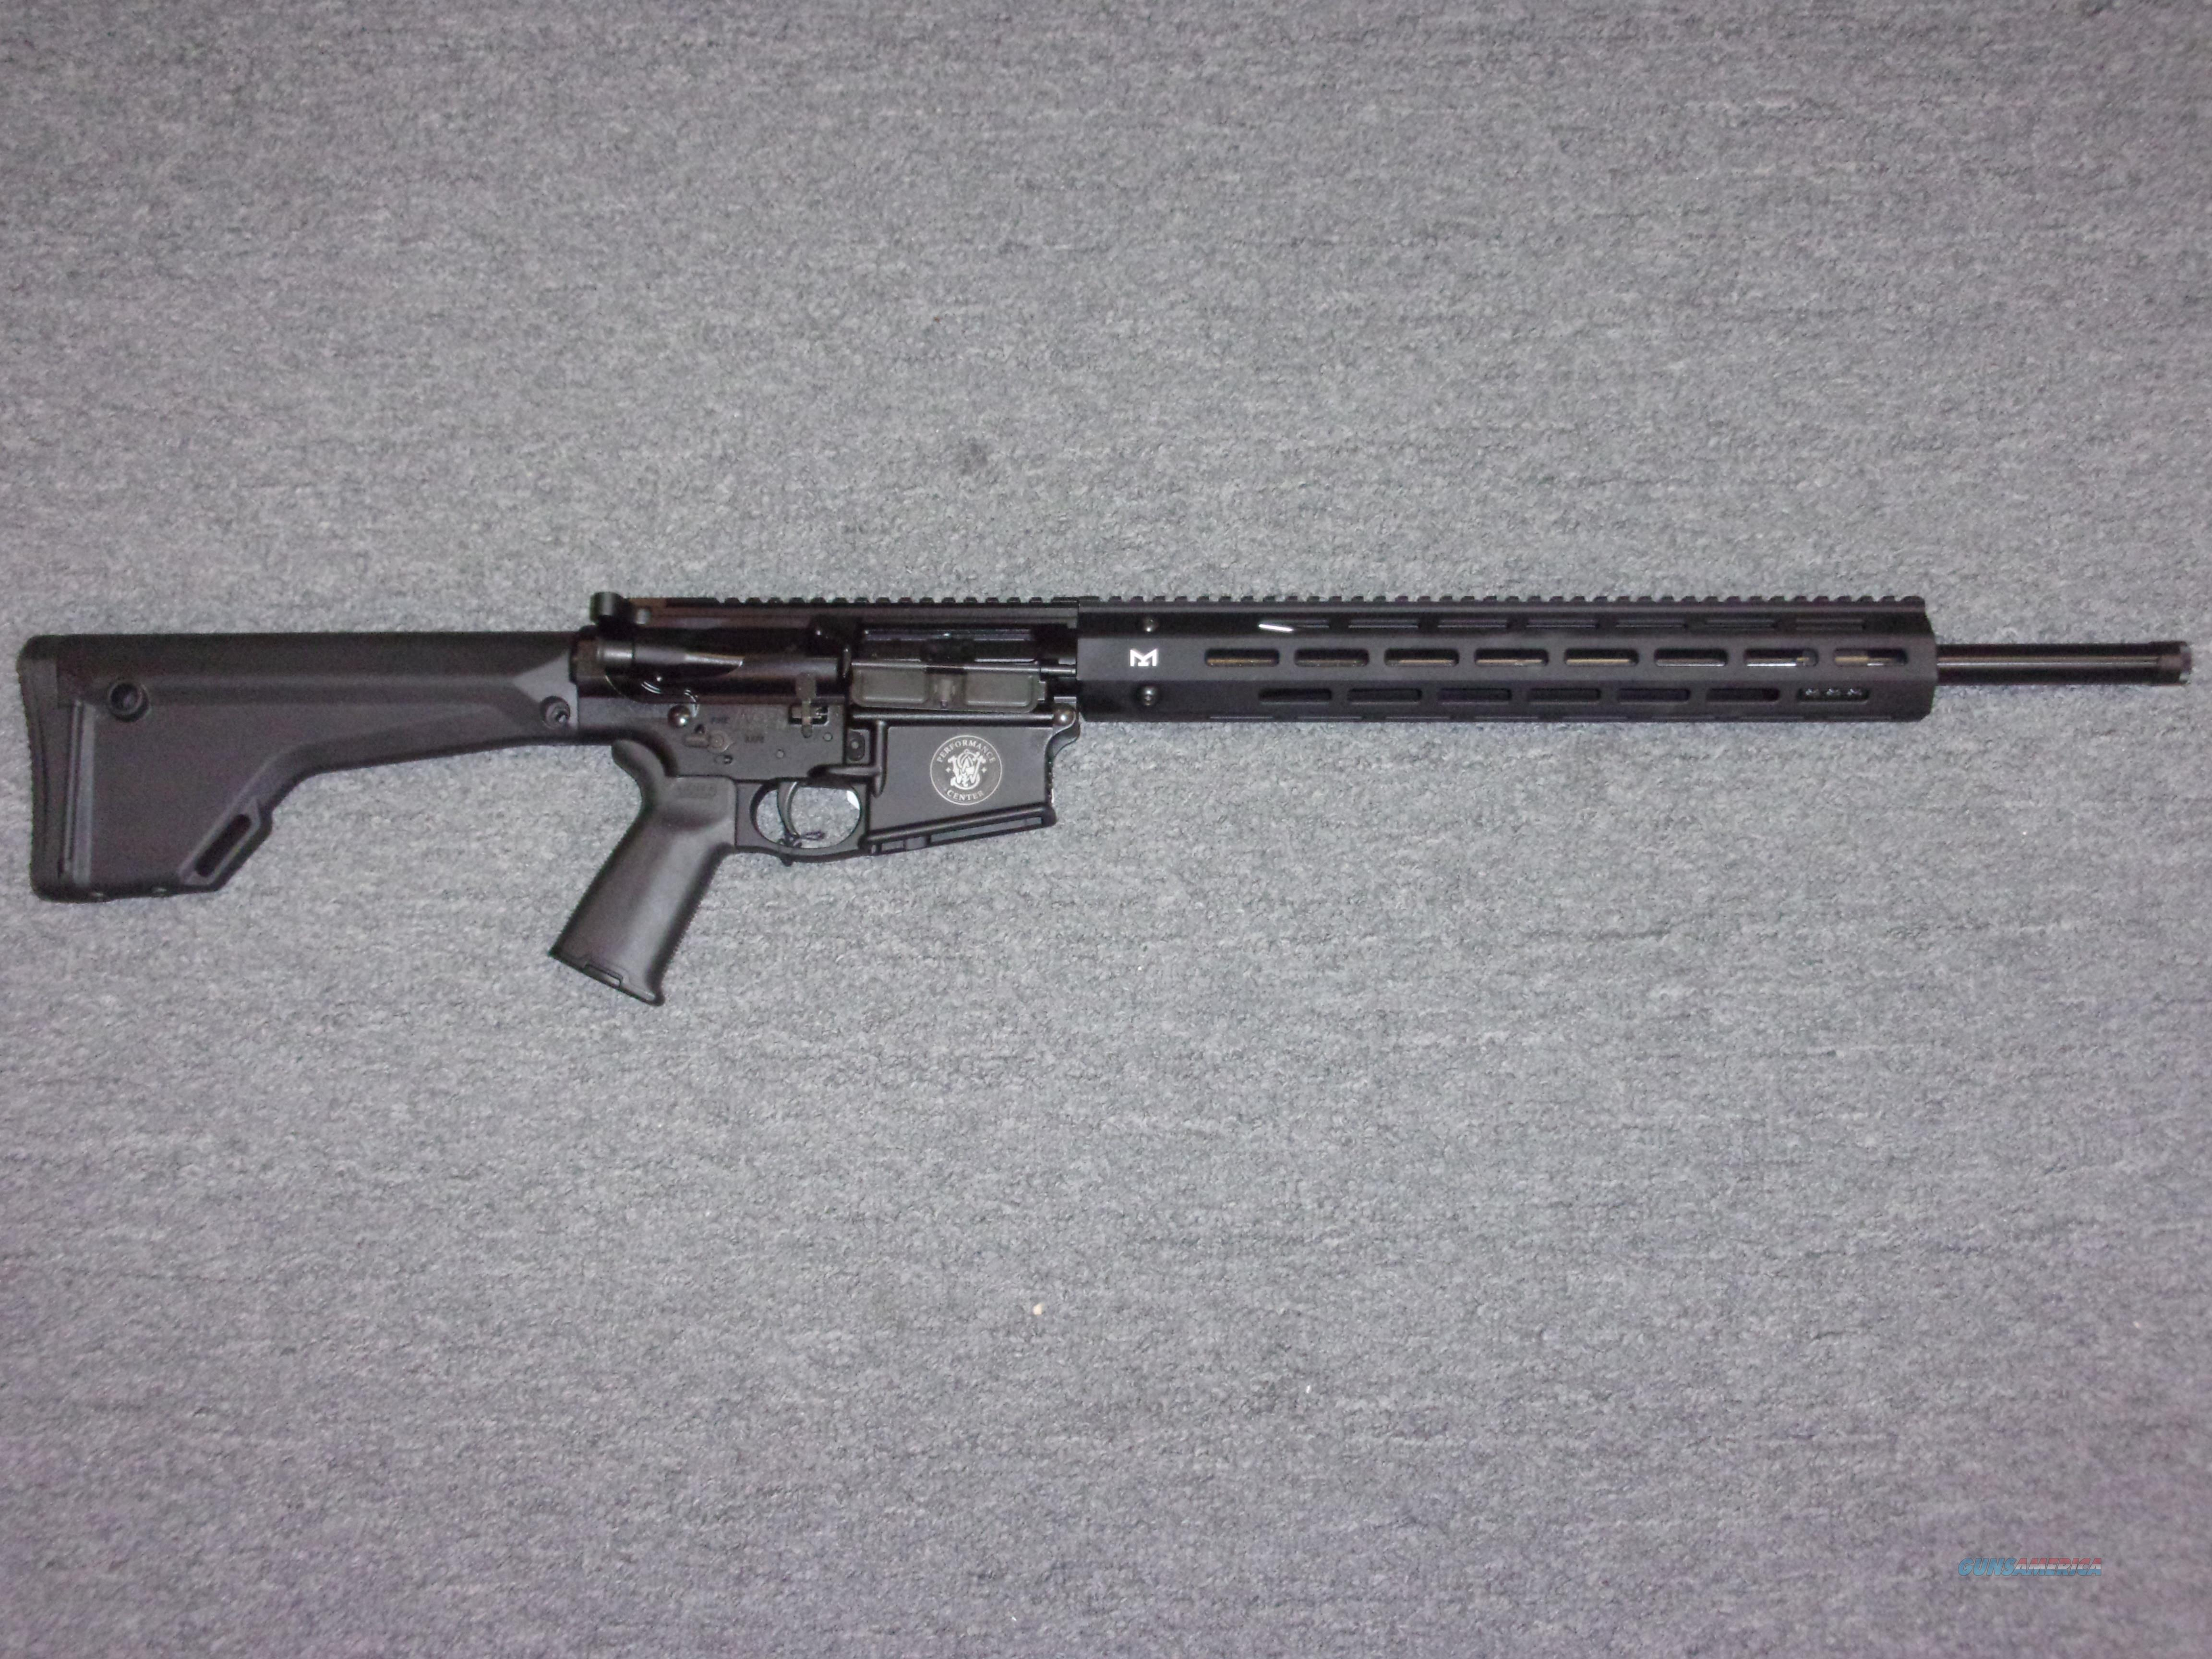 Smith & Wesson M&P10 6.5 Creedmoor (Performance Center)  Guns > Rifles > Smith & Wesson Rifles > M&P